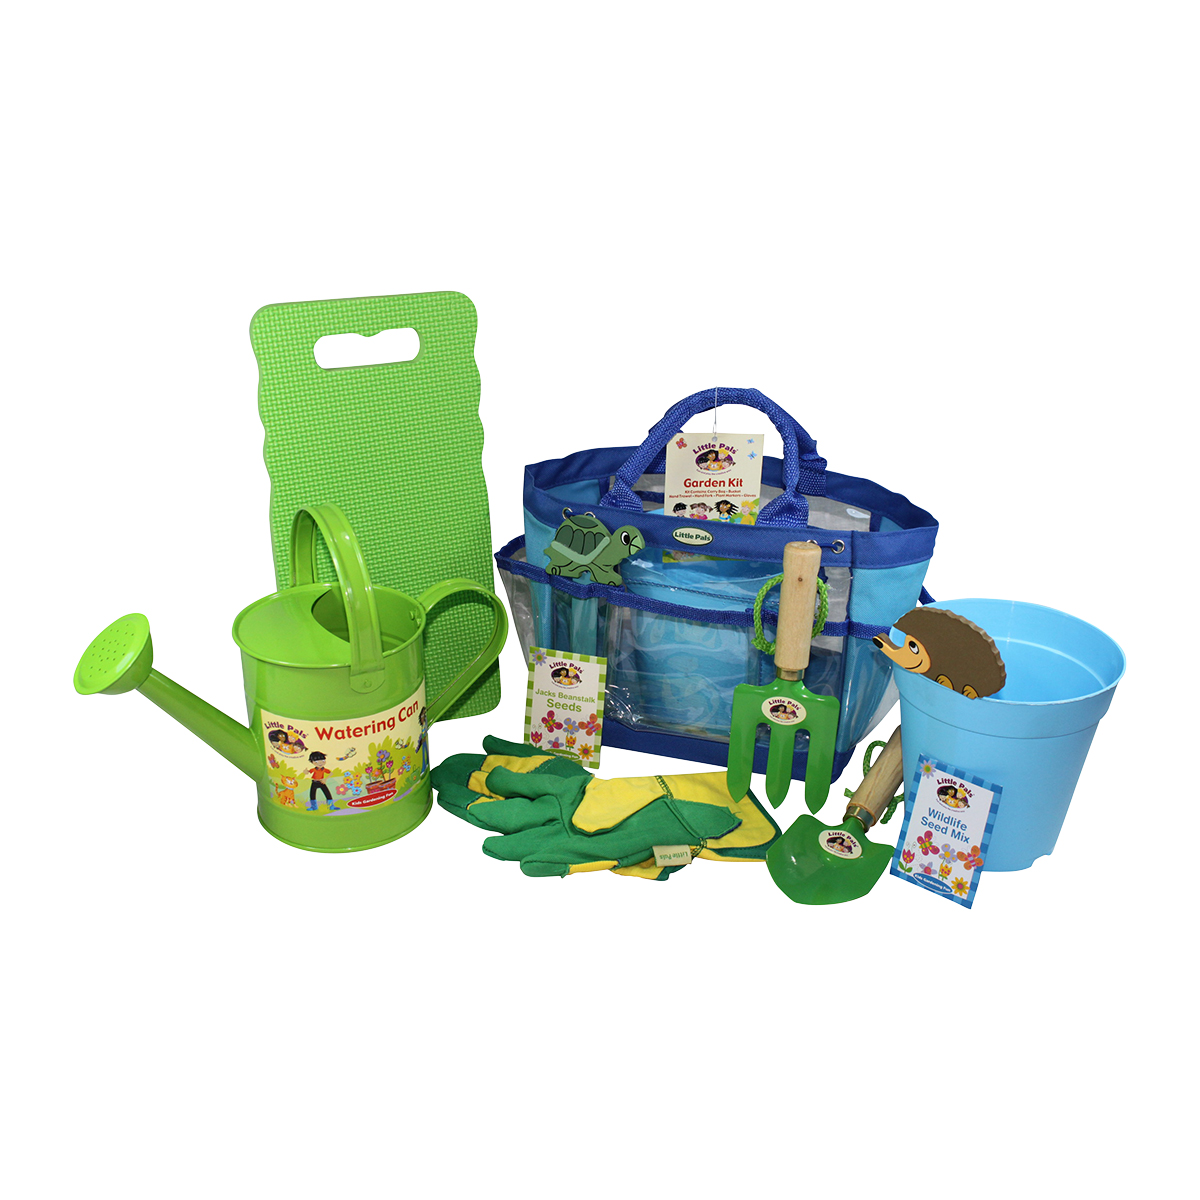 childrens gardening, growing and planting set, blue